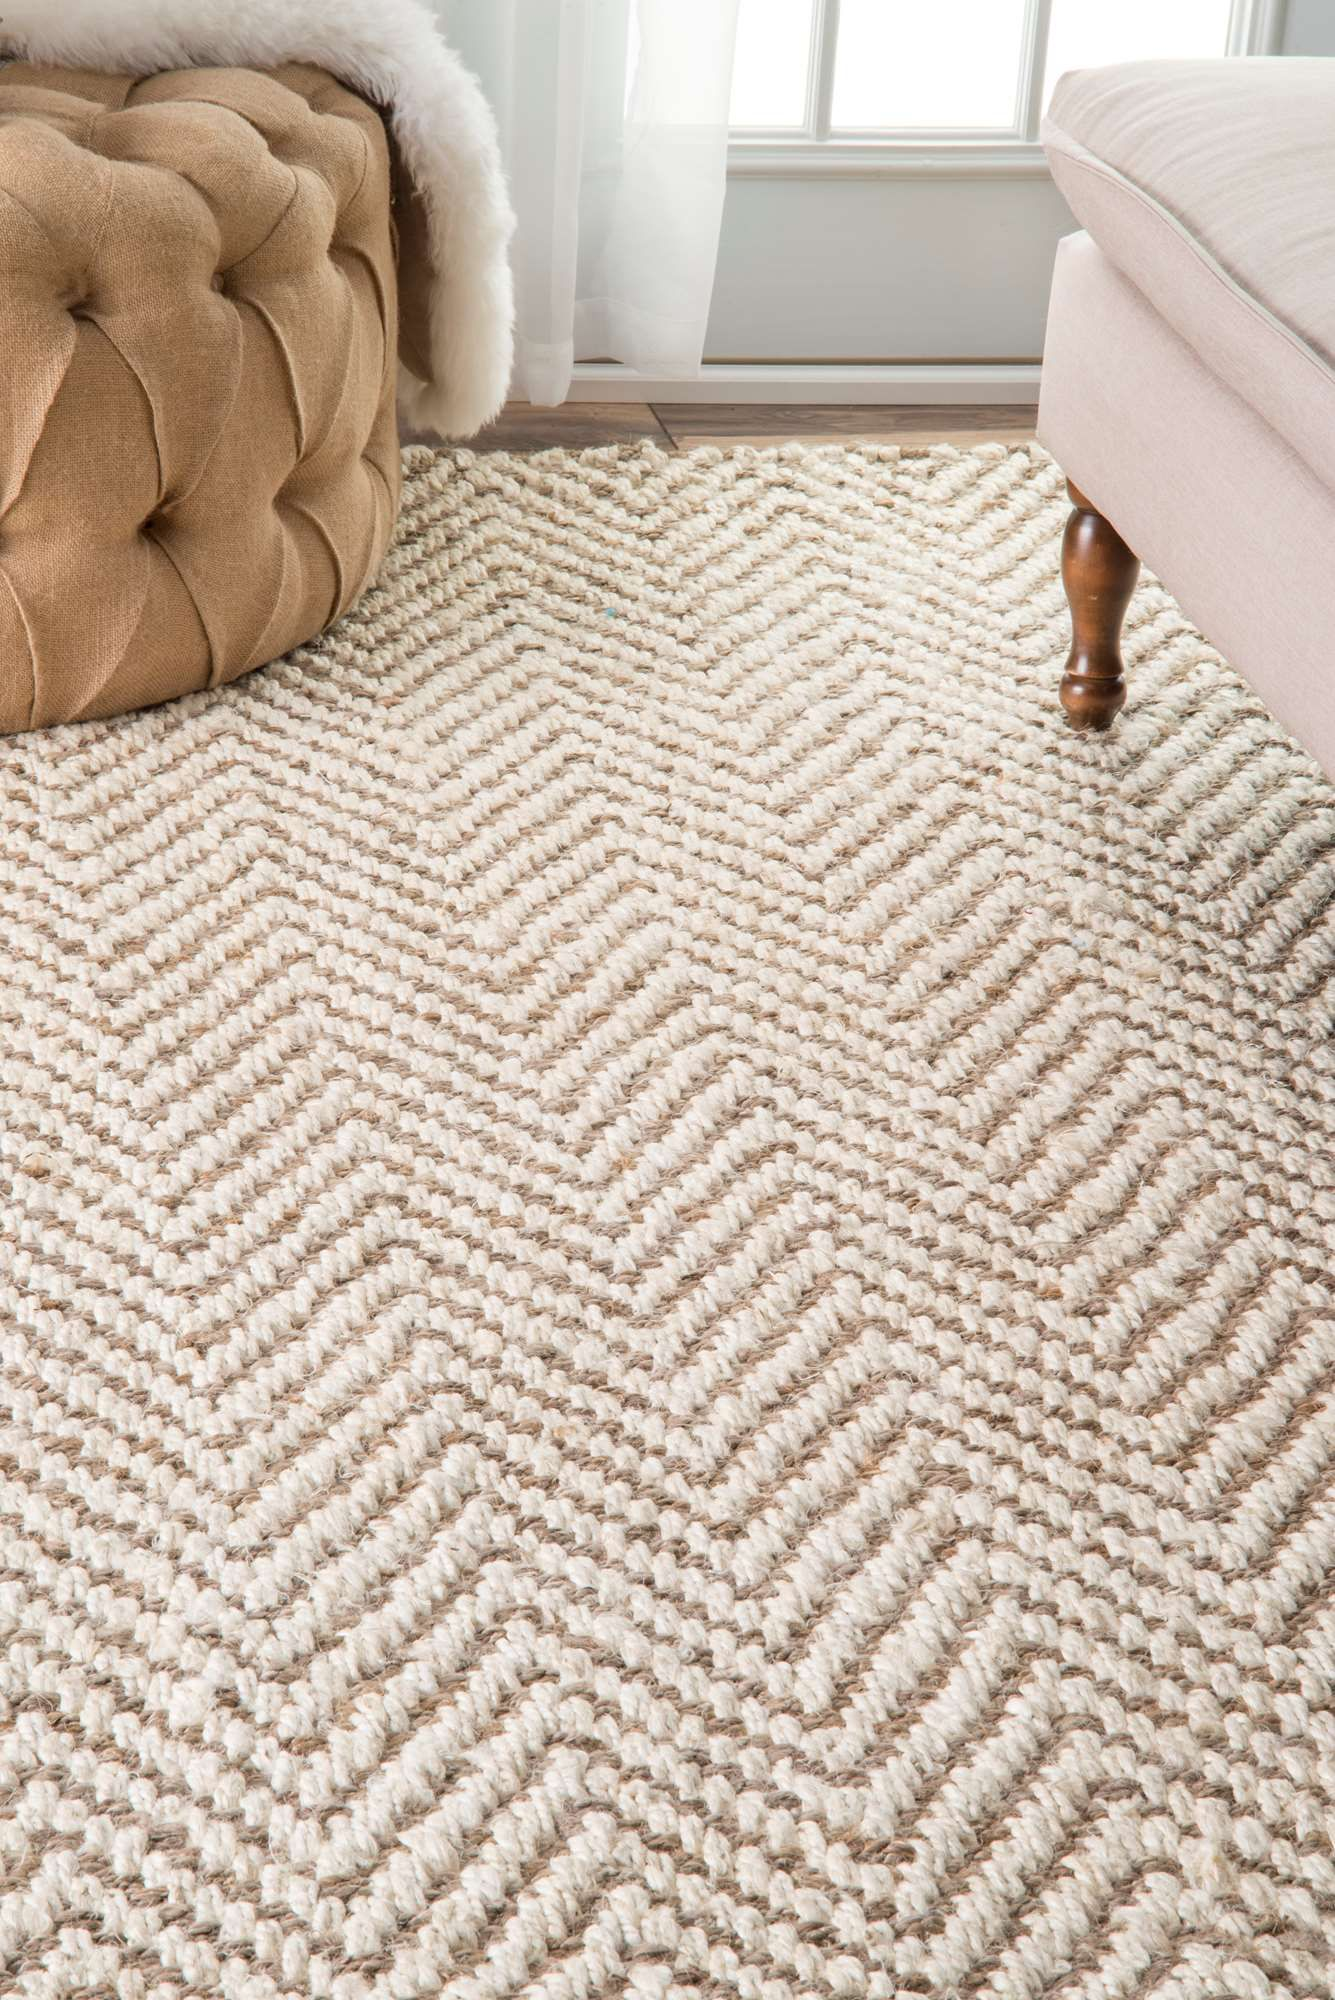 For The Home Kiwawa03 Handwoven Jute Jagged Chevron Rug